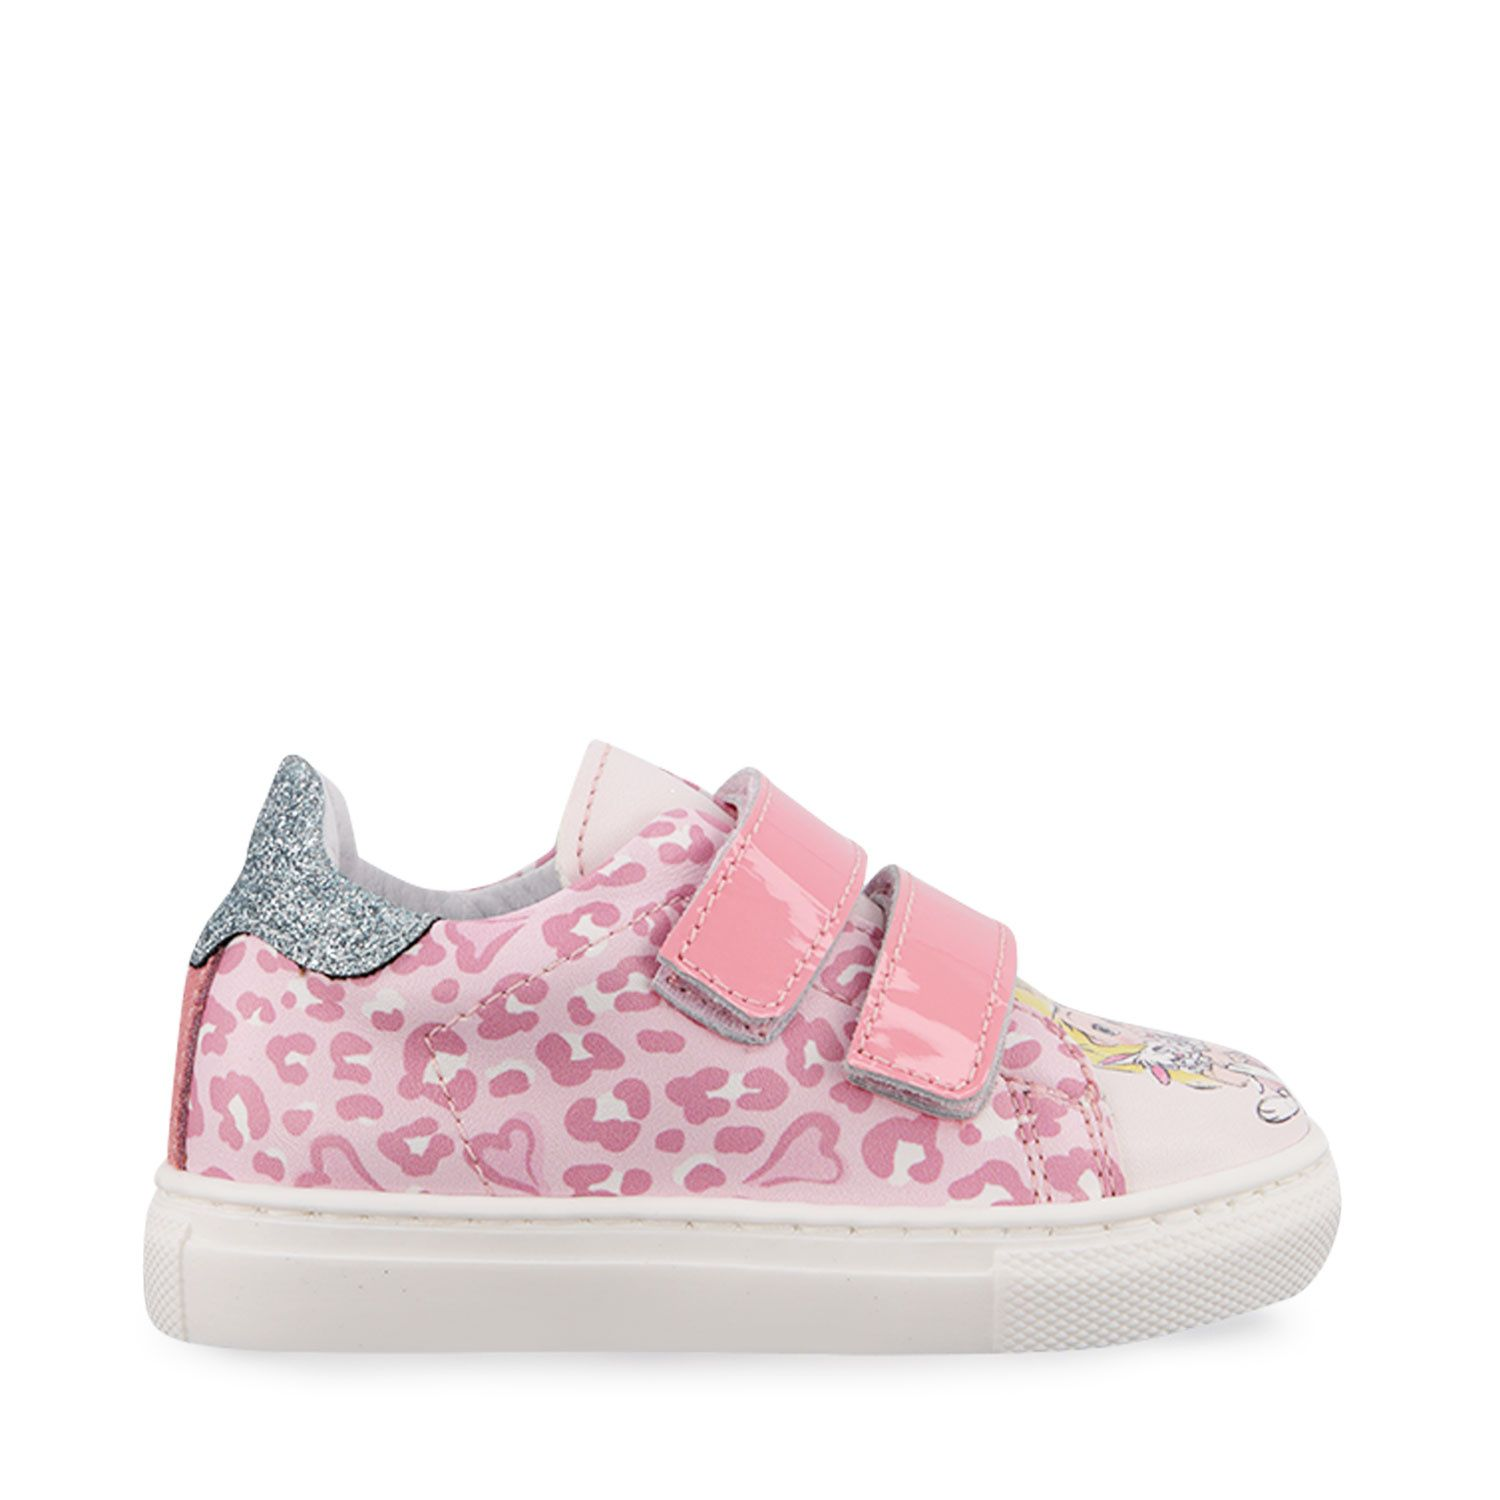 Picture of MonnaLisa 836020 kids sneakers light pink